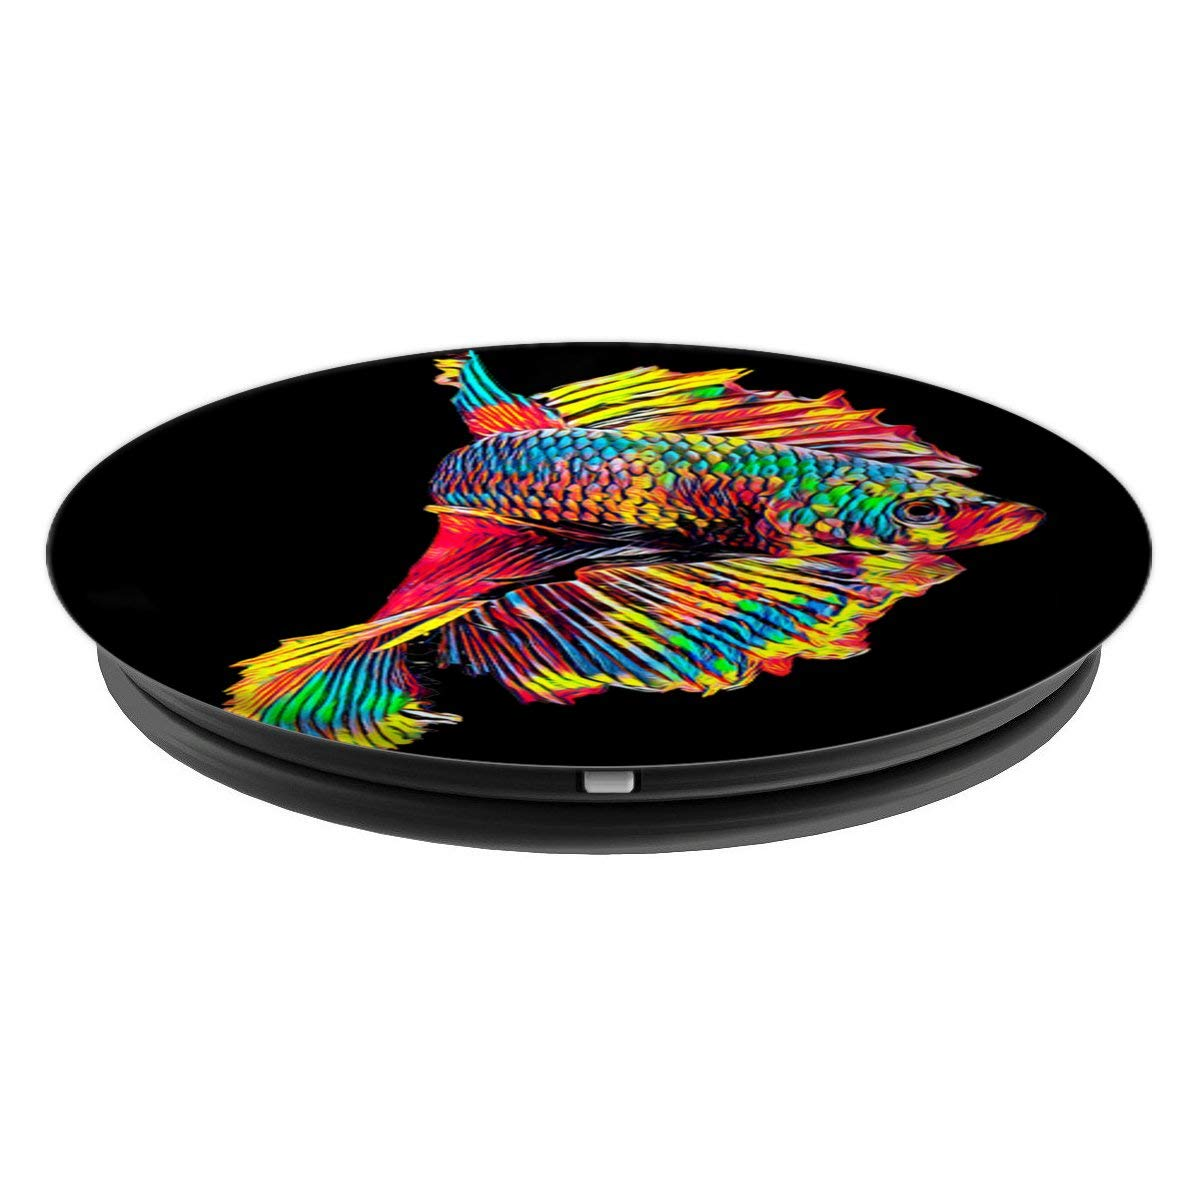 Amazon.com: Beautiful Siamese Fighting Fish - PopSockets Grip and Stand for Phones and Tablets: Cell Phones & Accessories